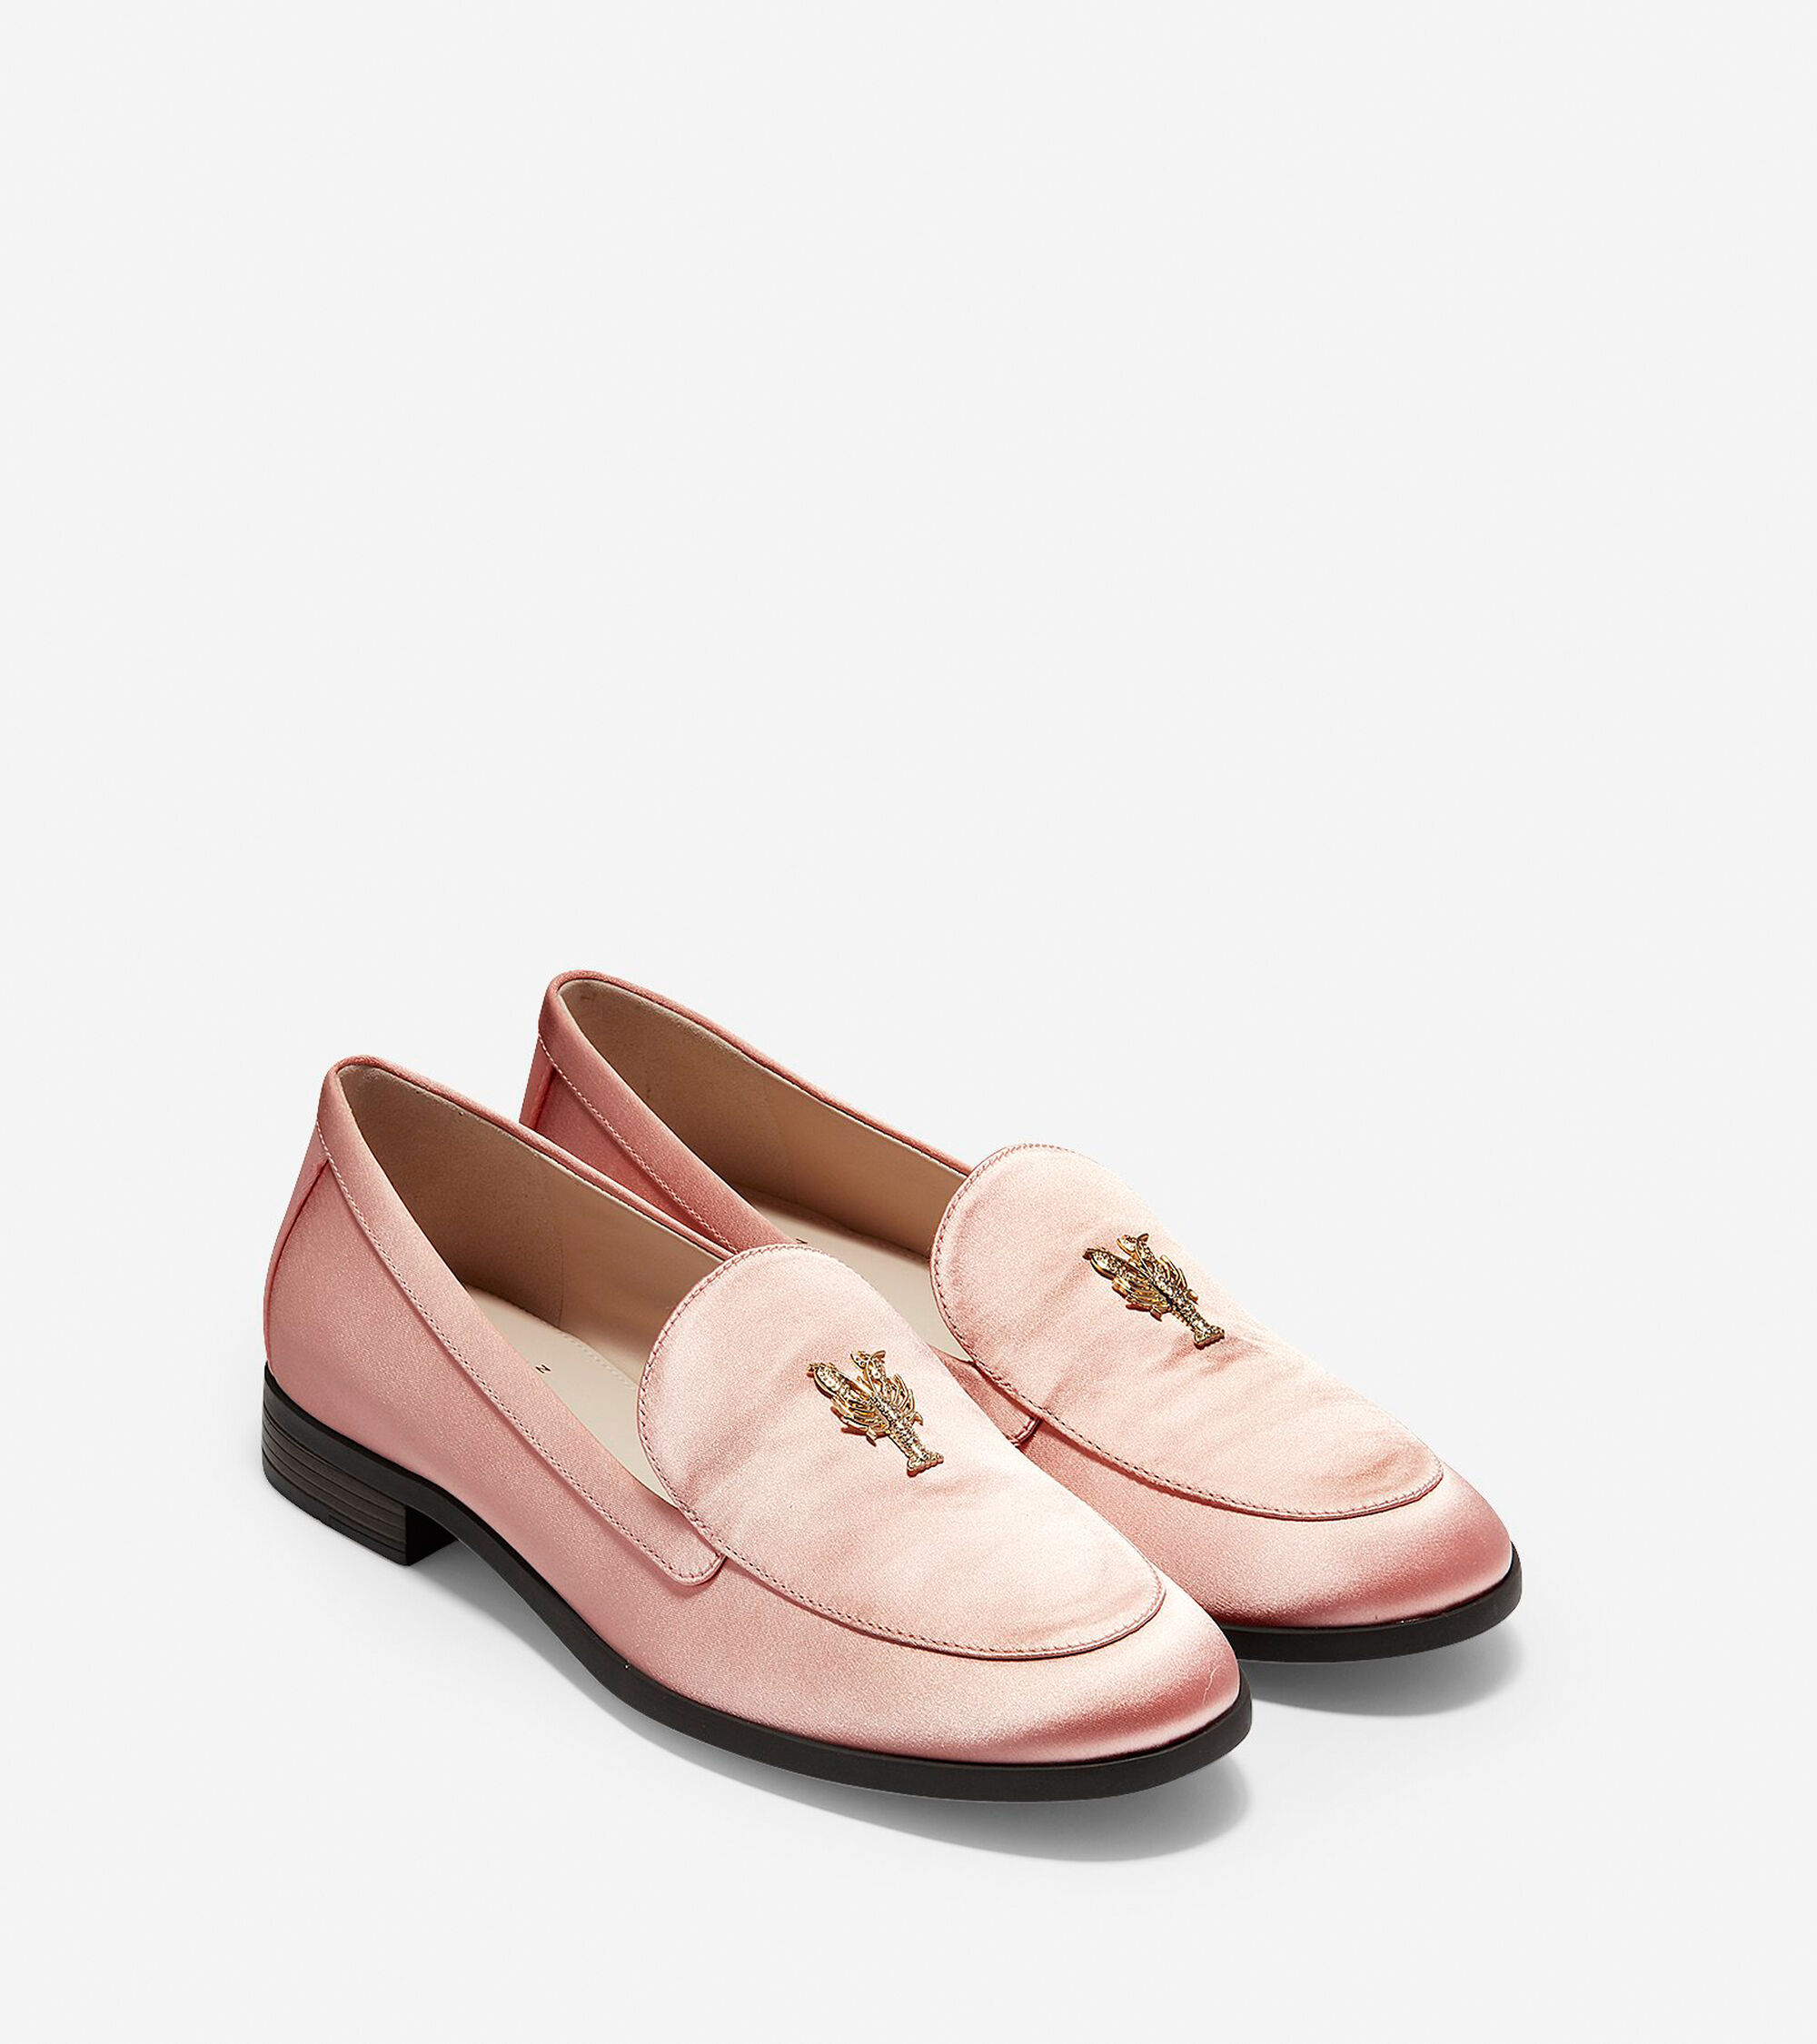 e761d79b971 ... Women s Pinch Lobster Loafer  Women s Pinch Lobster Loafer.  COLEHAAN